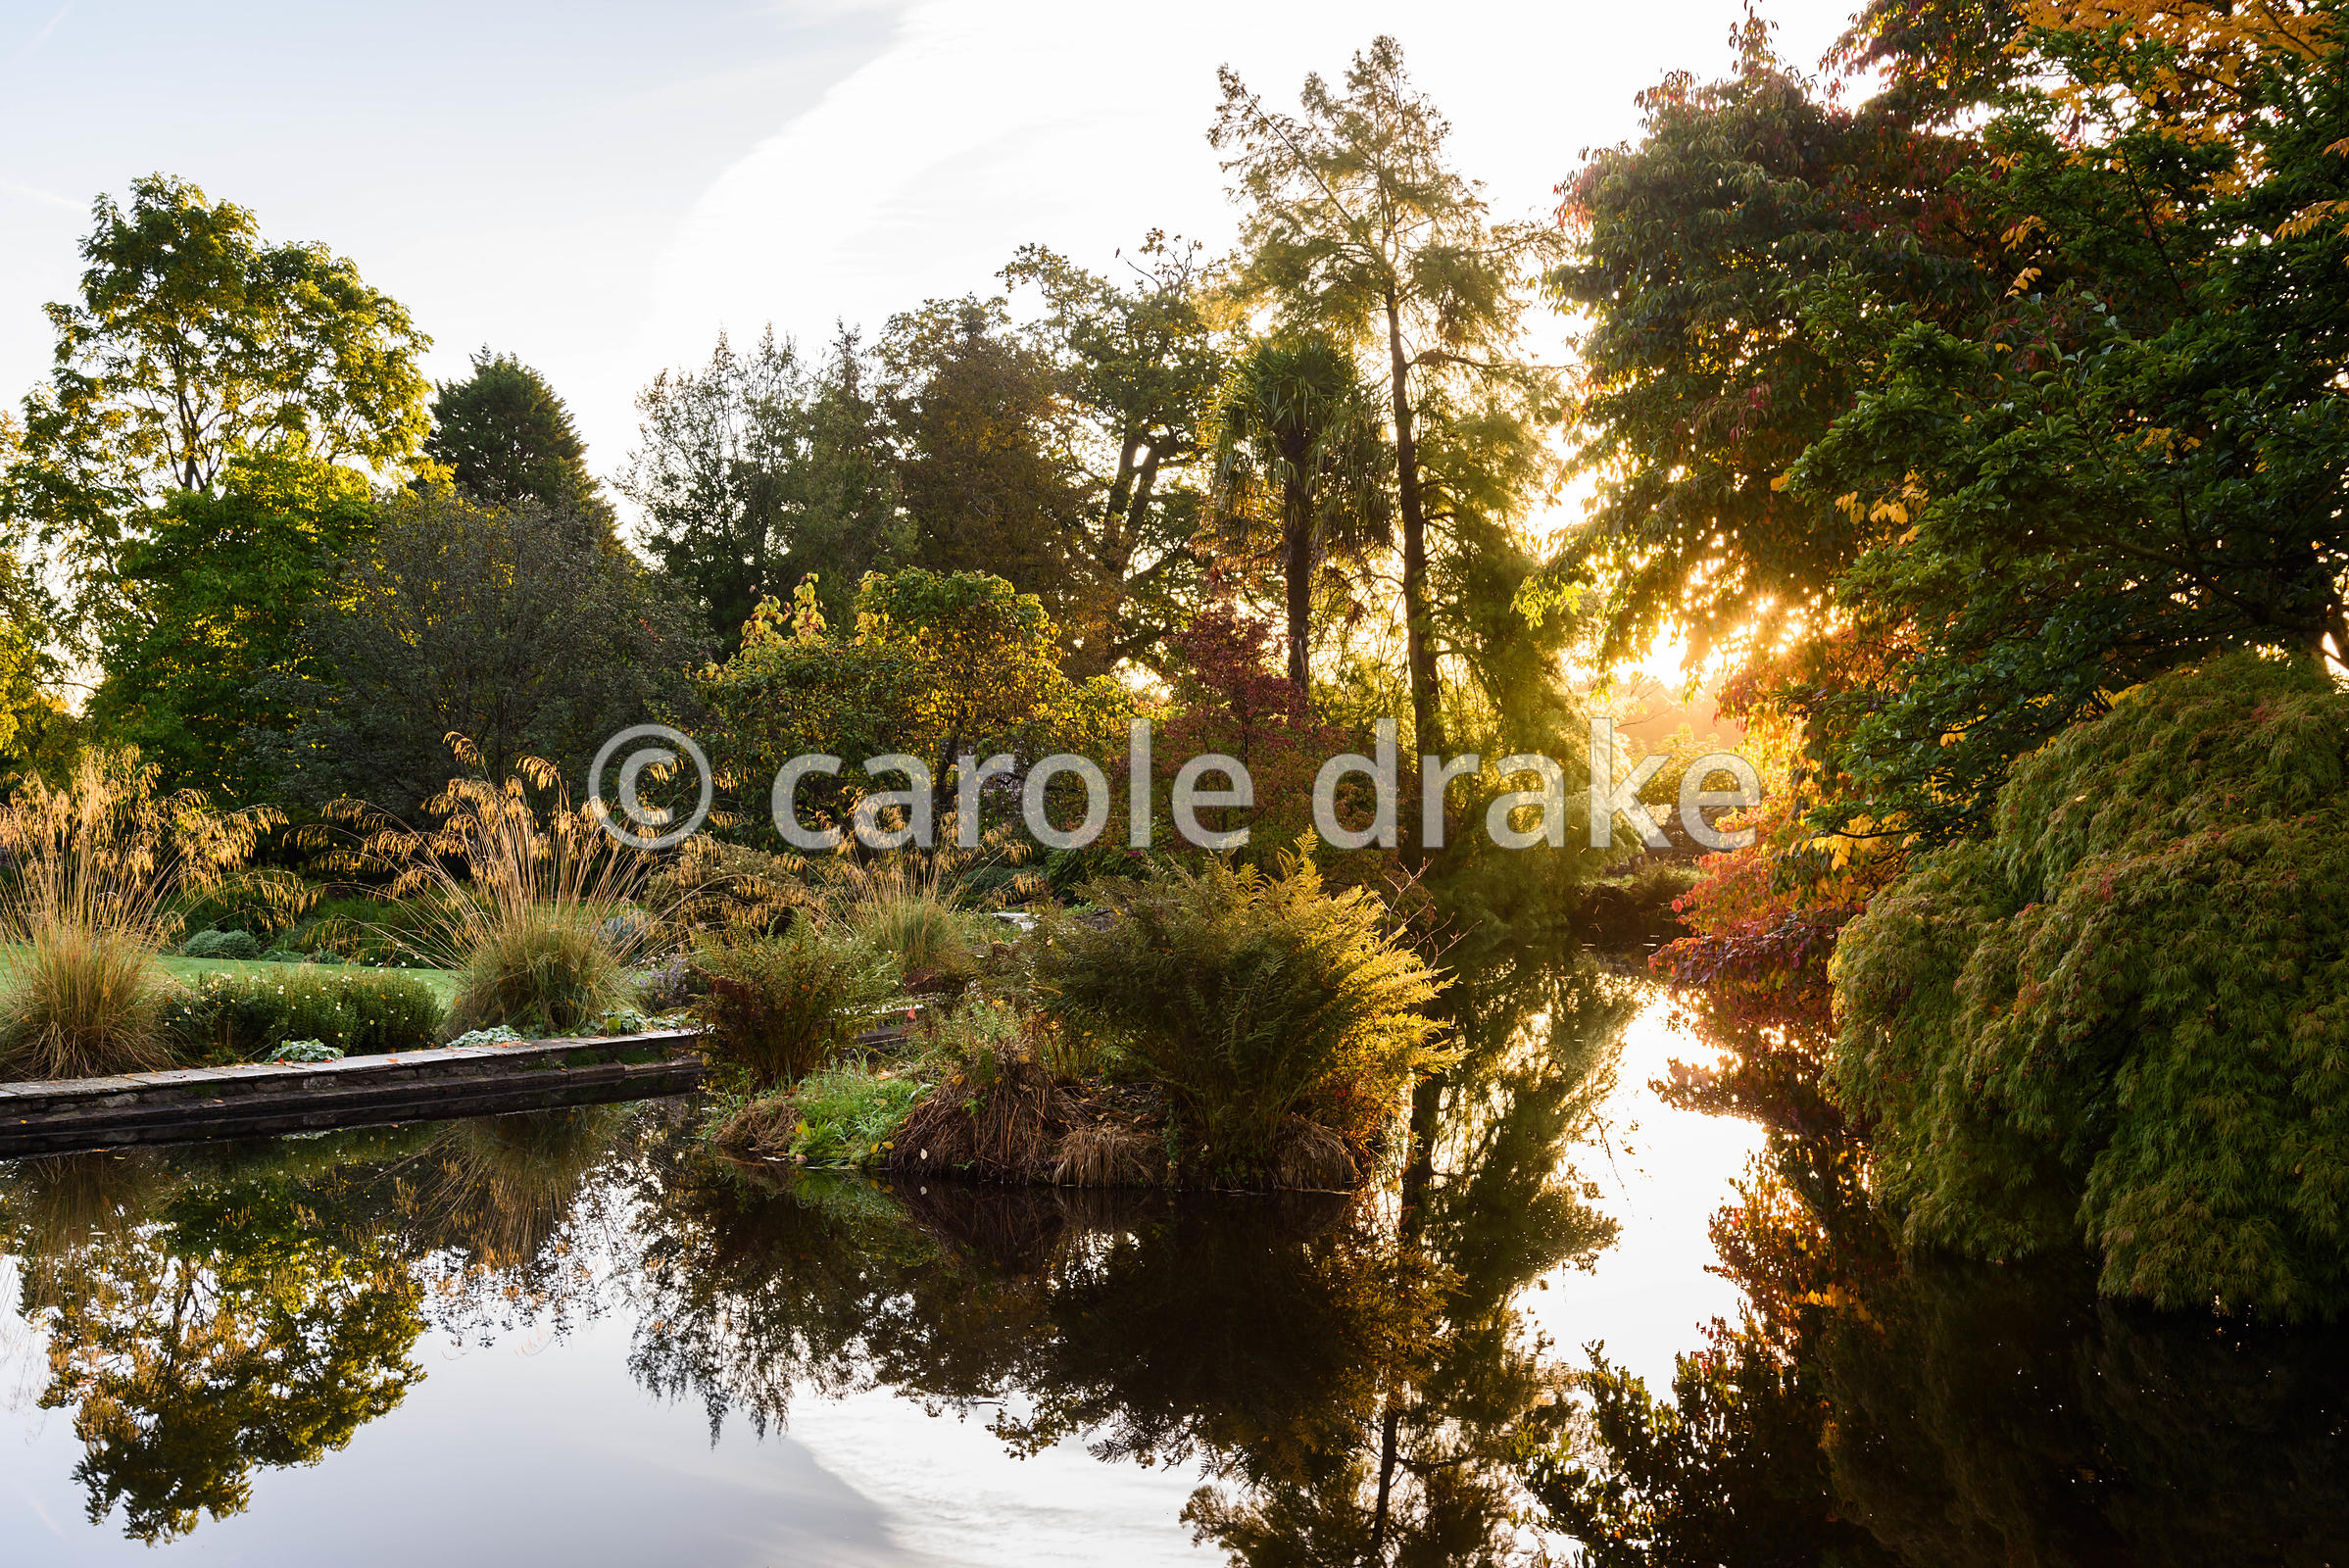 The Lower Pond surrounded by trees and shrubs including Acer palmatum dissectum, magnolias and moisture loving ferns plus a border dotted with Stipa gigantea at Llanover Gardens, Monmouthshire in September